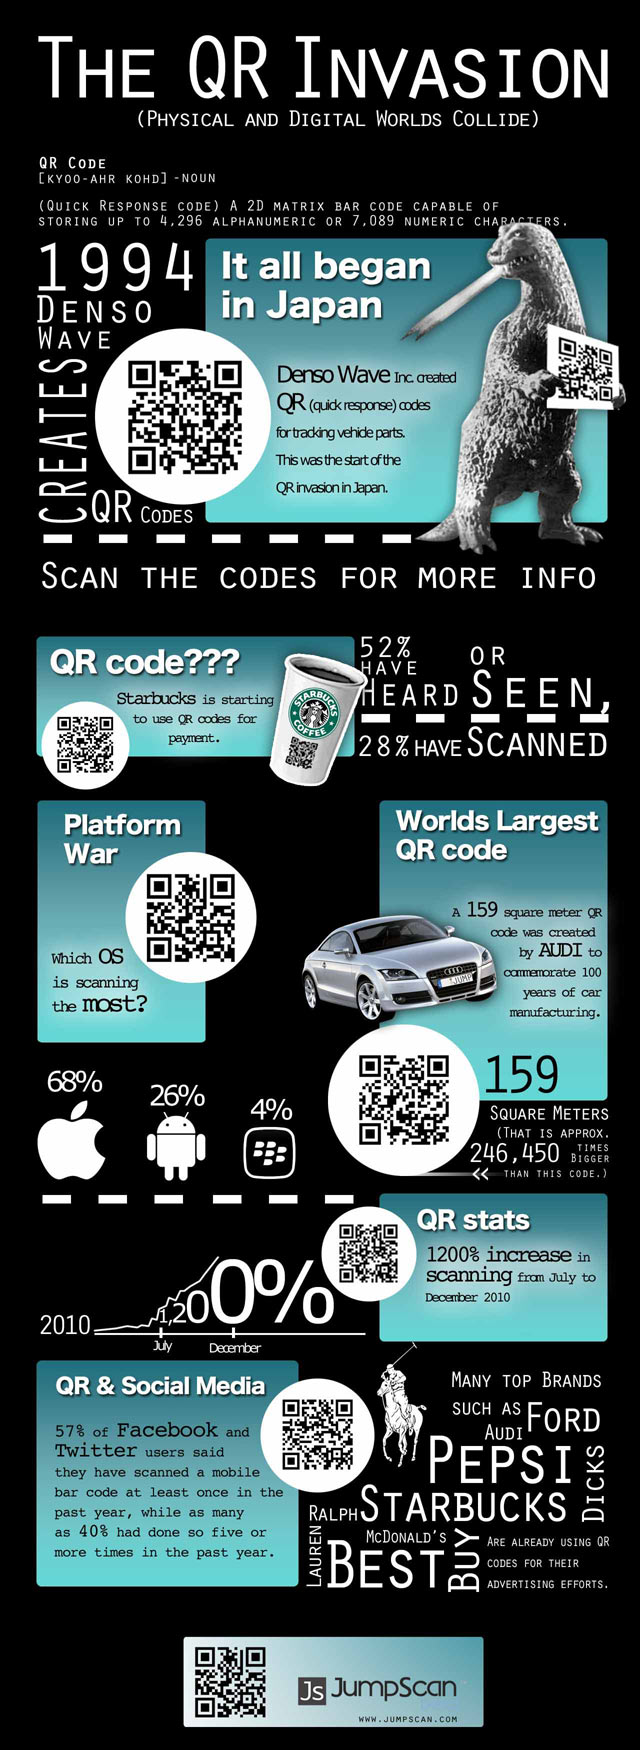 The QR Invasion - Who's Really Scanning All Those QR Codes?